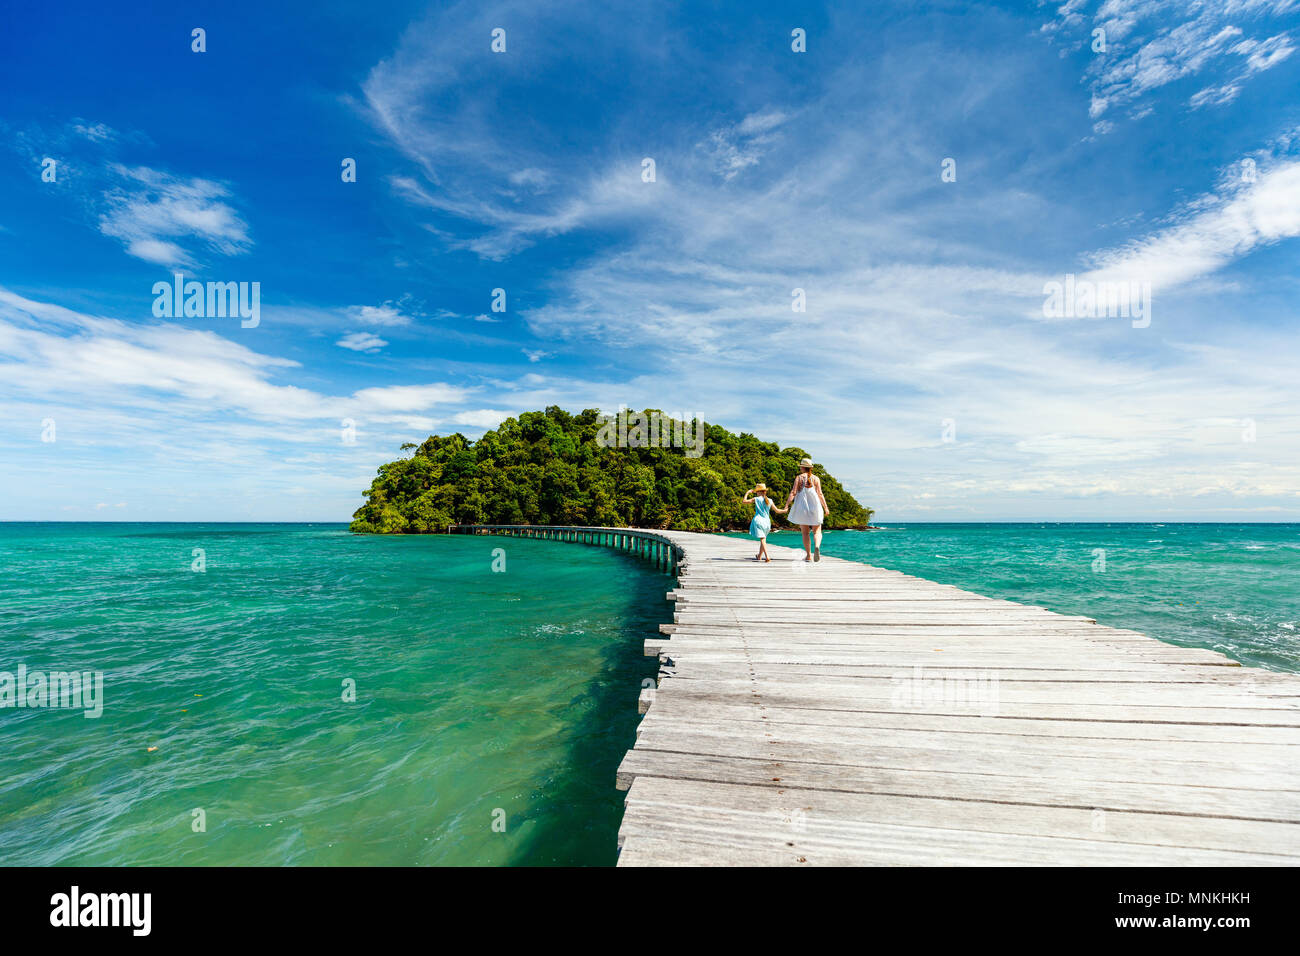 Wooden pathway leading to beautiful tropical island in Cambodia - Stock Image